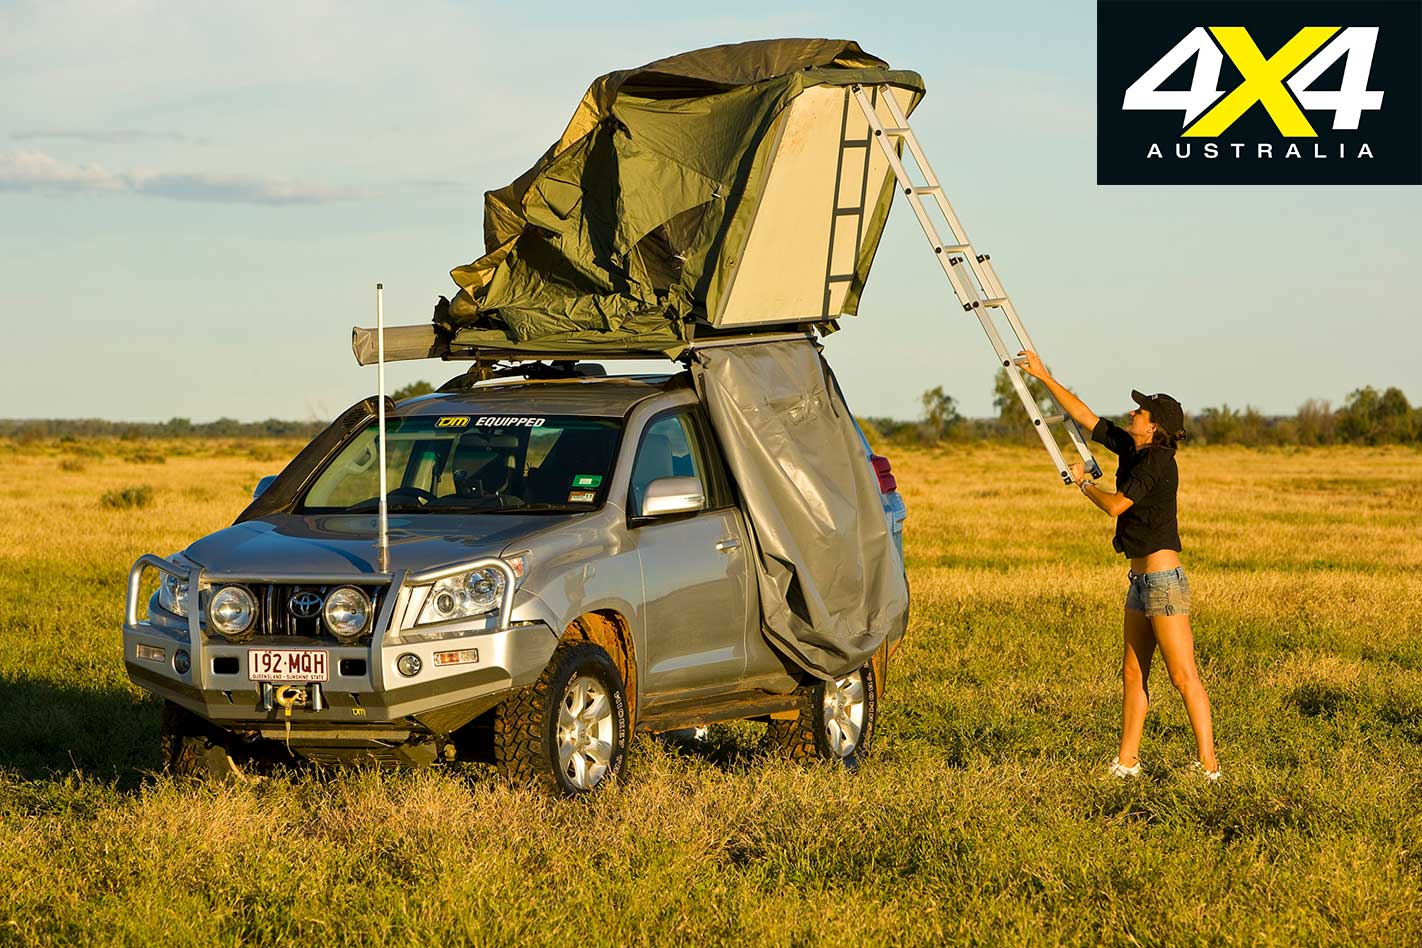 Adventure Kings Roof Top Tent Installation rooftop tent buyers' guide | 4x4 australia